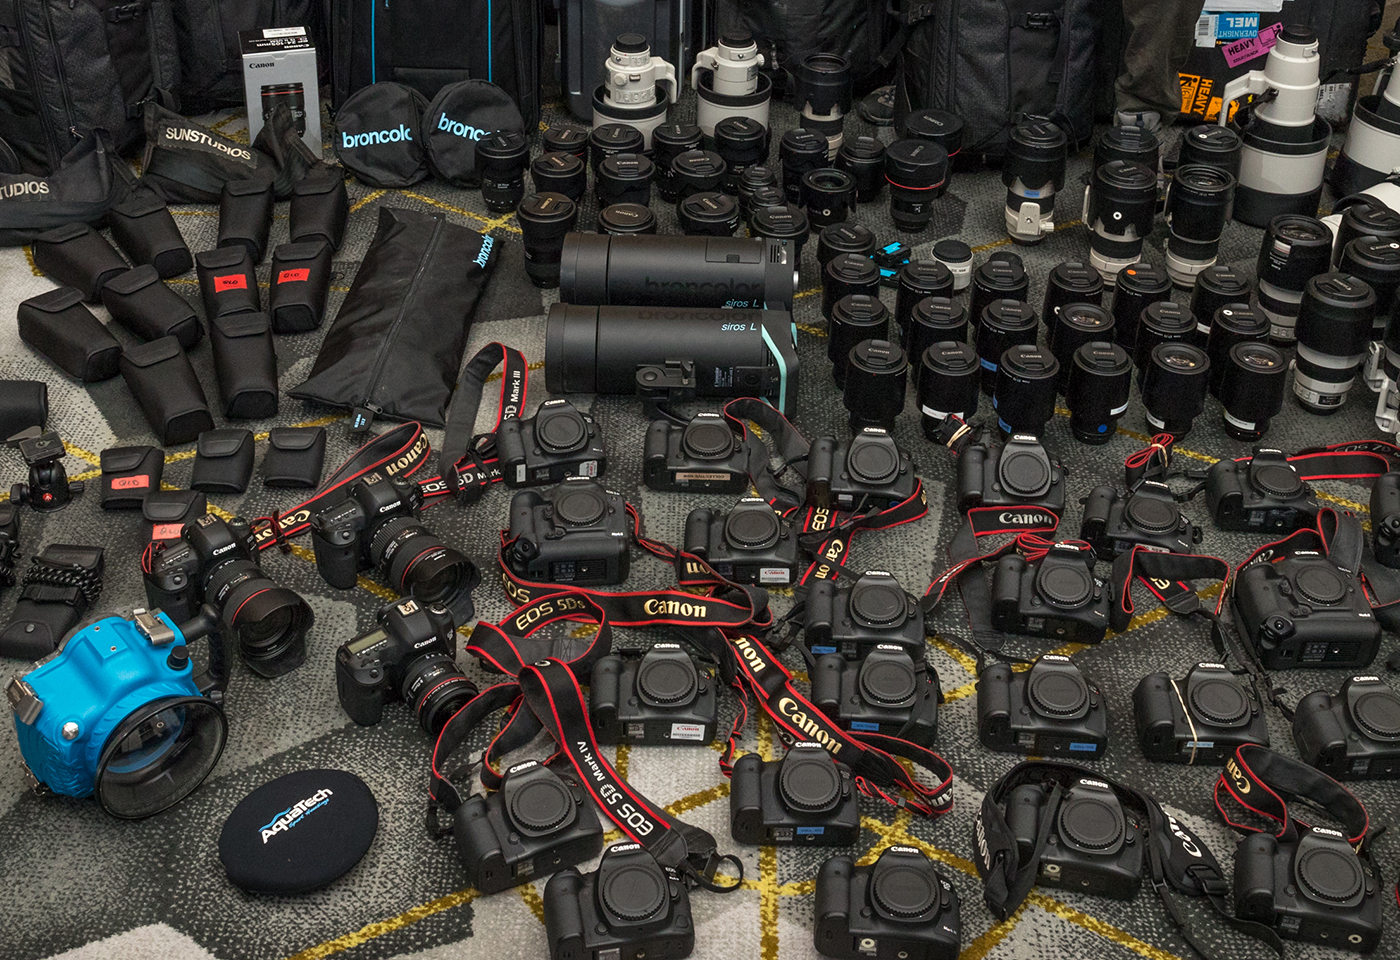 Image of EOS cameras and lenses